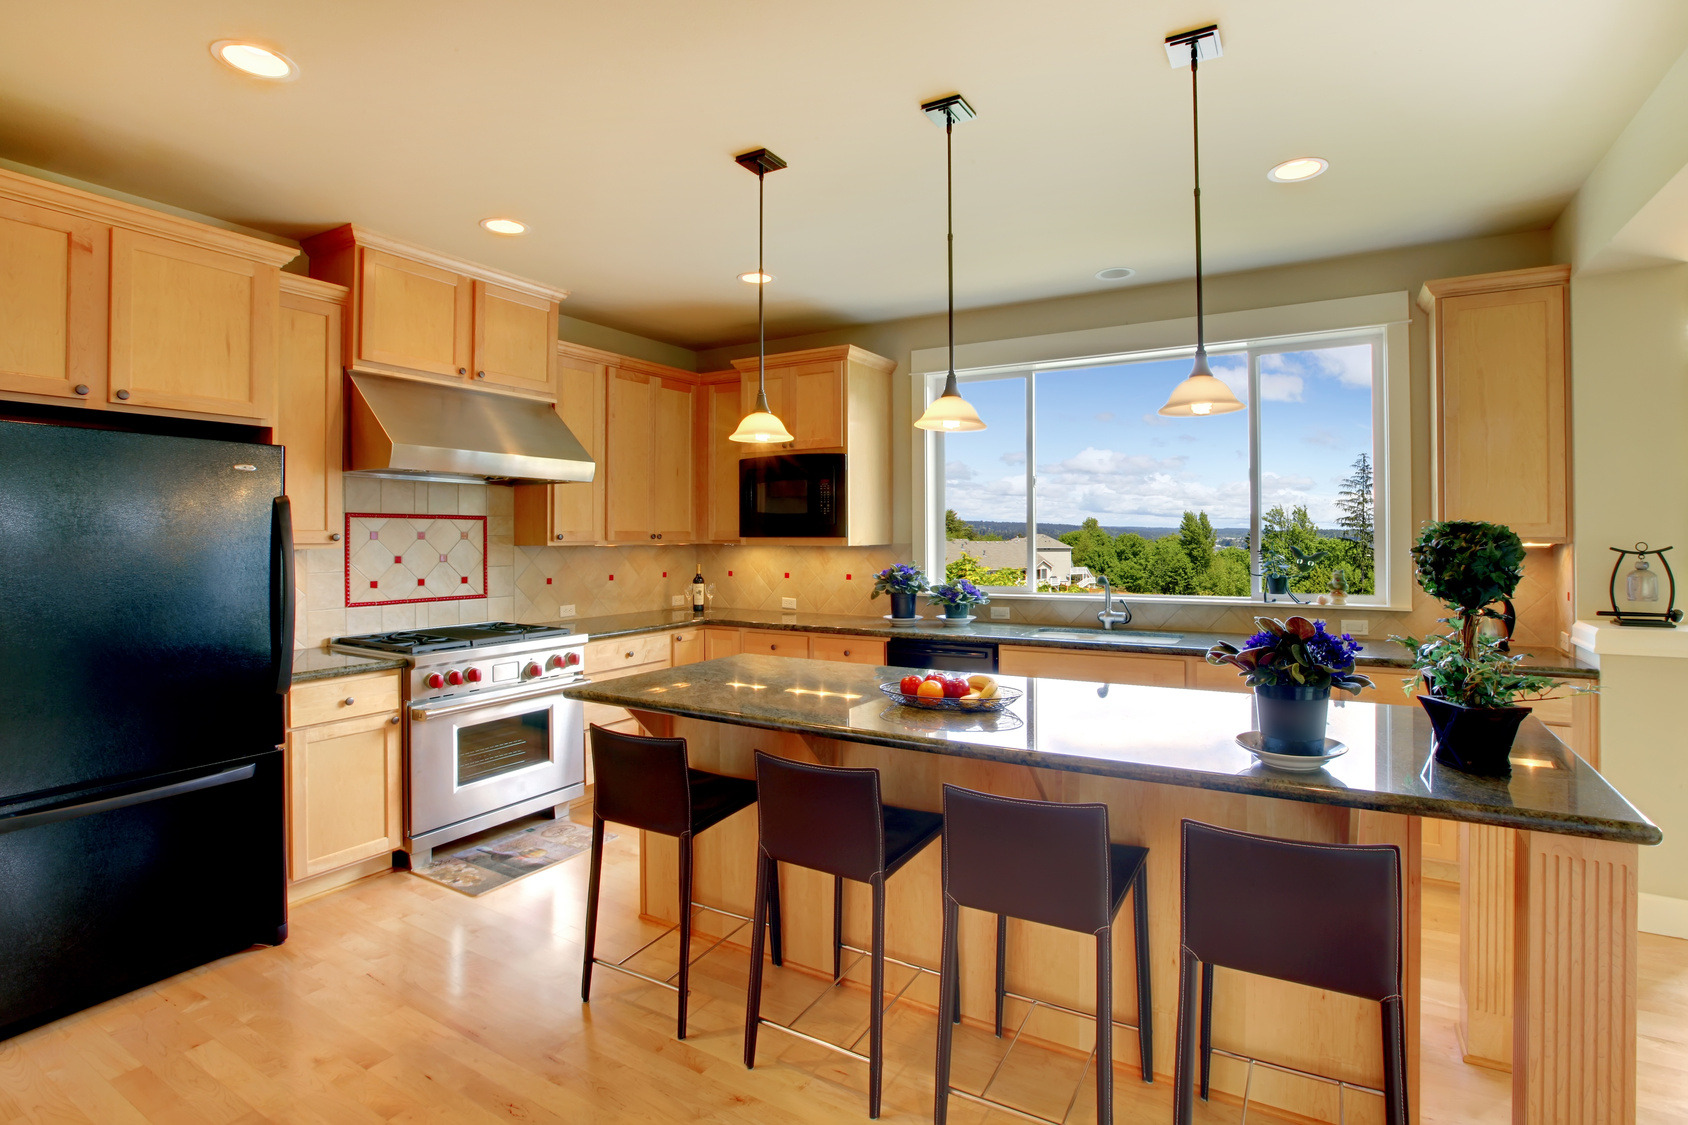 remodeling 13 essential questions to ask yourself before you start your remodel - ZKEYRWA